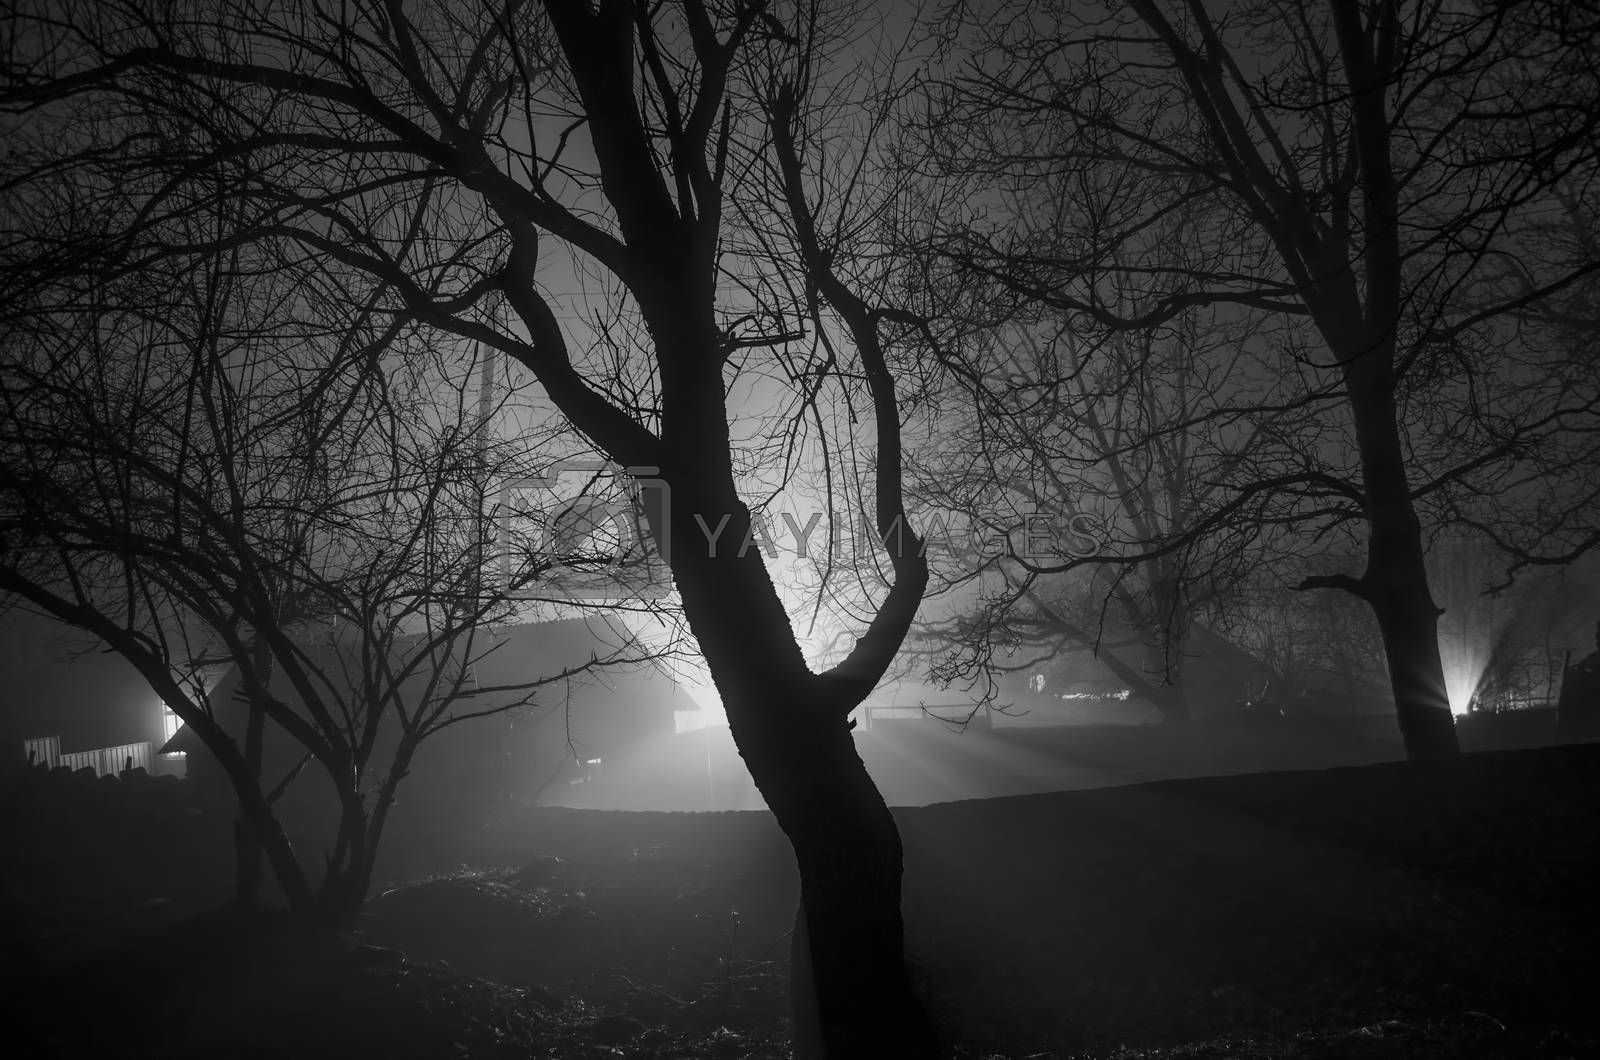 strange light in a dark forest at night, spooky foggy landscape of trees silhouettes with light behind, mytical concept